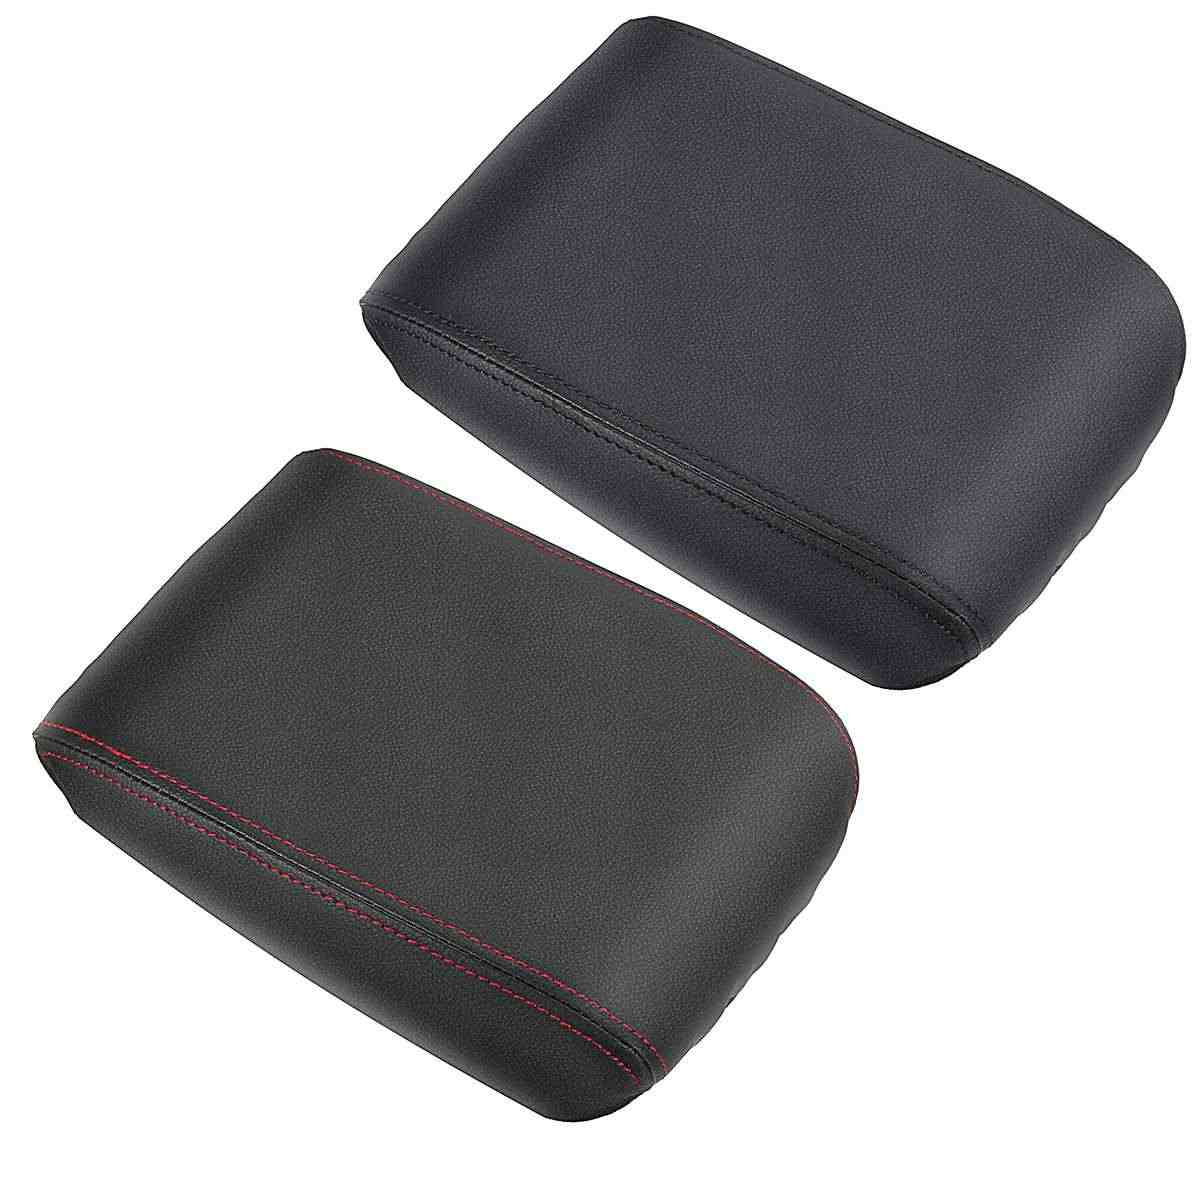 Car PU Leather Center Console Seat Armrest Arm Rest Box Pads Cover For Volkswagen For VW Tiguan MK2 2016 2017 2018